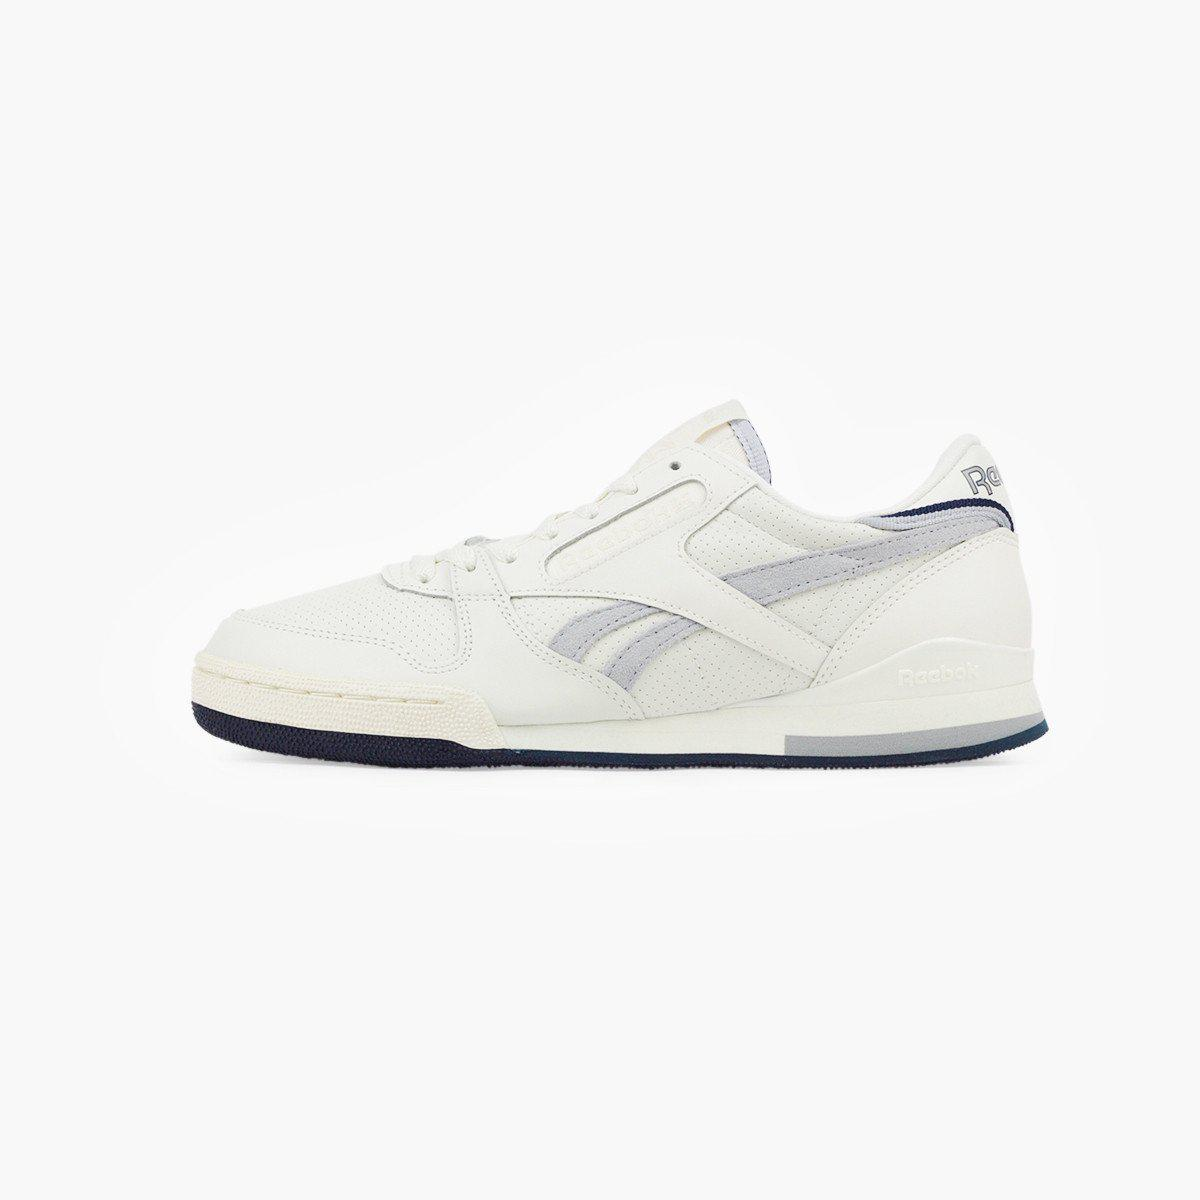 Reebok Phase 1 Pro Thof in White for Men - Save 17% - Lyst c17a95f3f